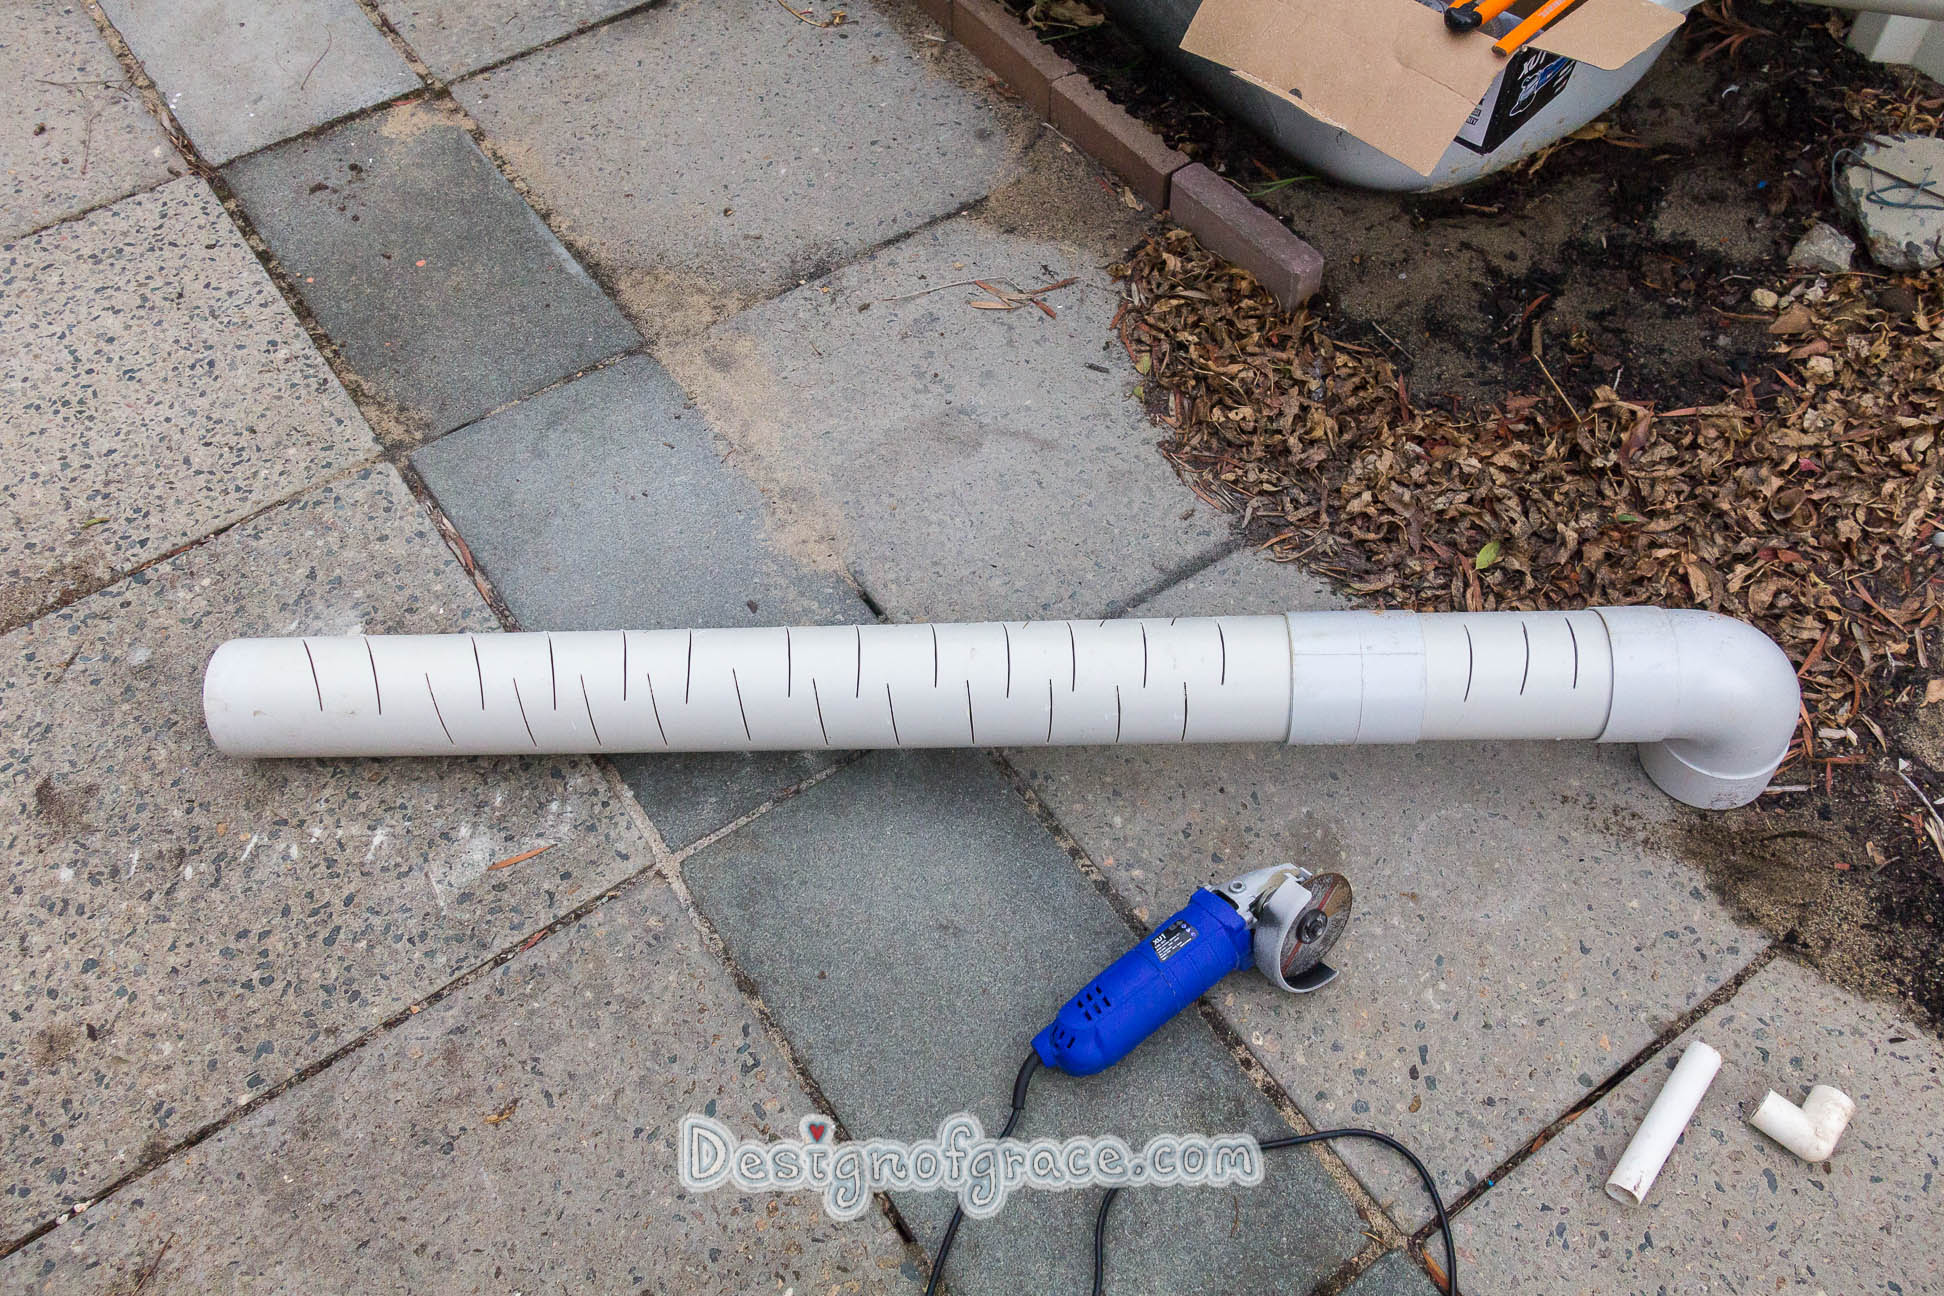 Thought I'll try to imitate the Ag slotted pipes by angle grinding slots on the PVC pipes instead of holes.